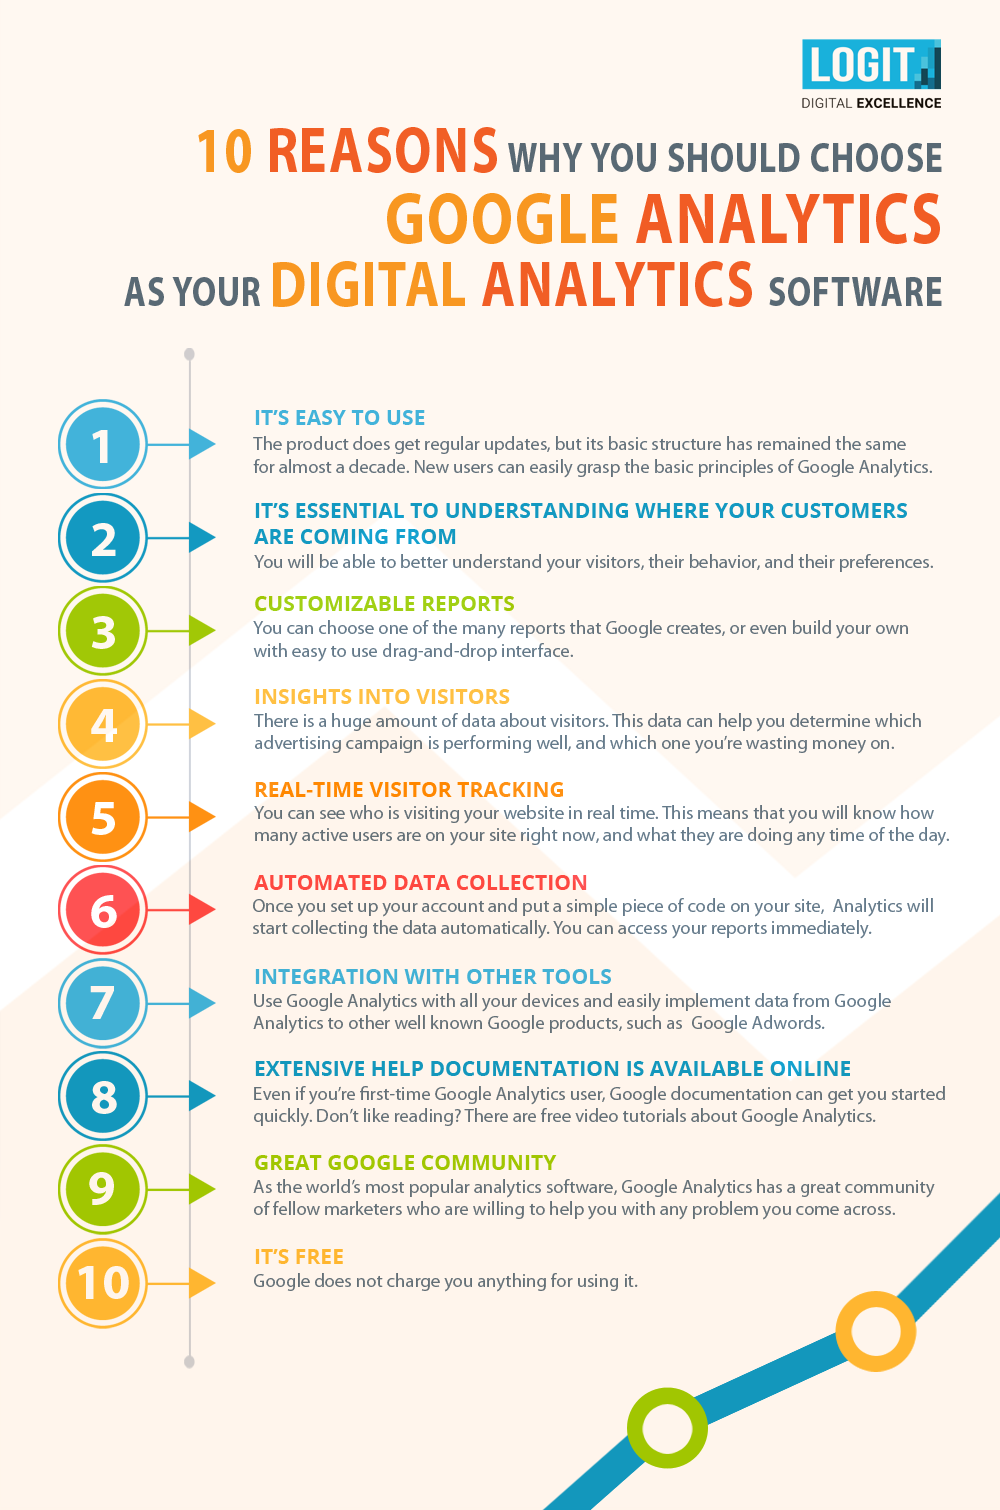 10 reasons to use Google Analytics as your digital analytics software - infographic by logit.hr